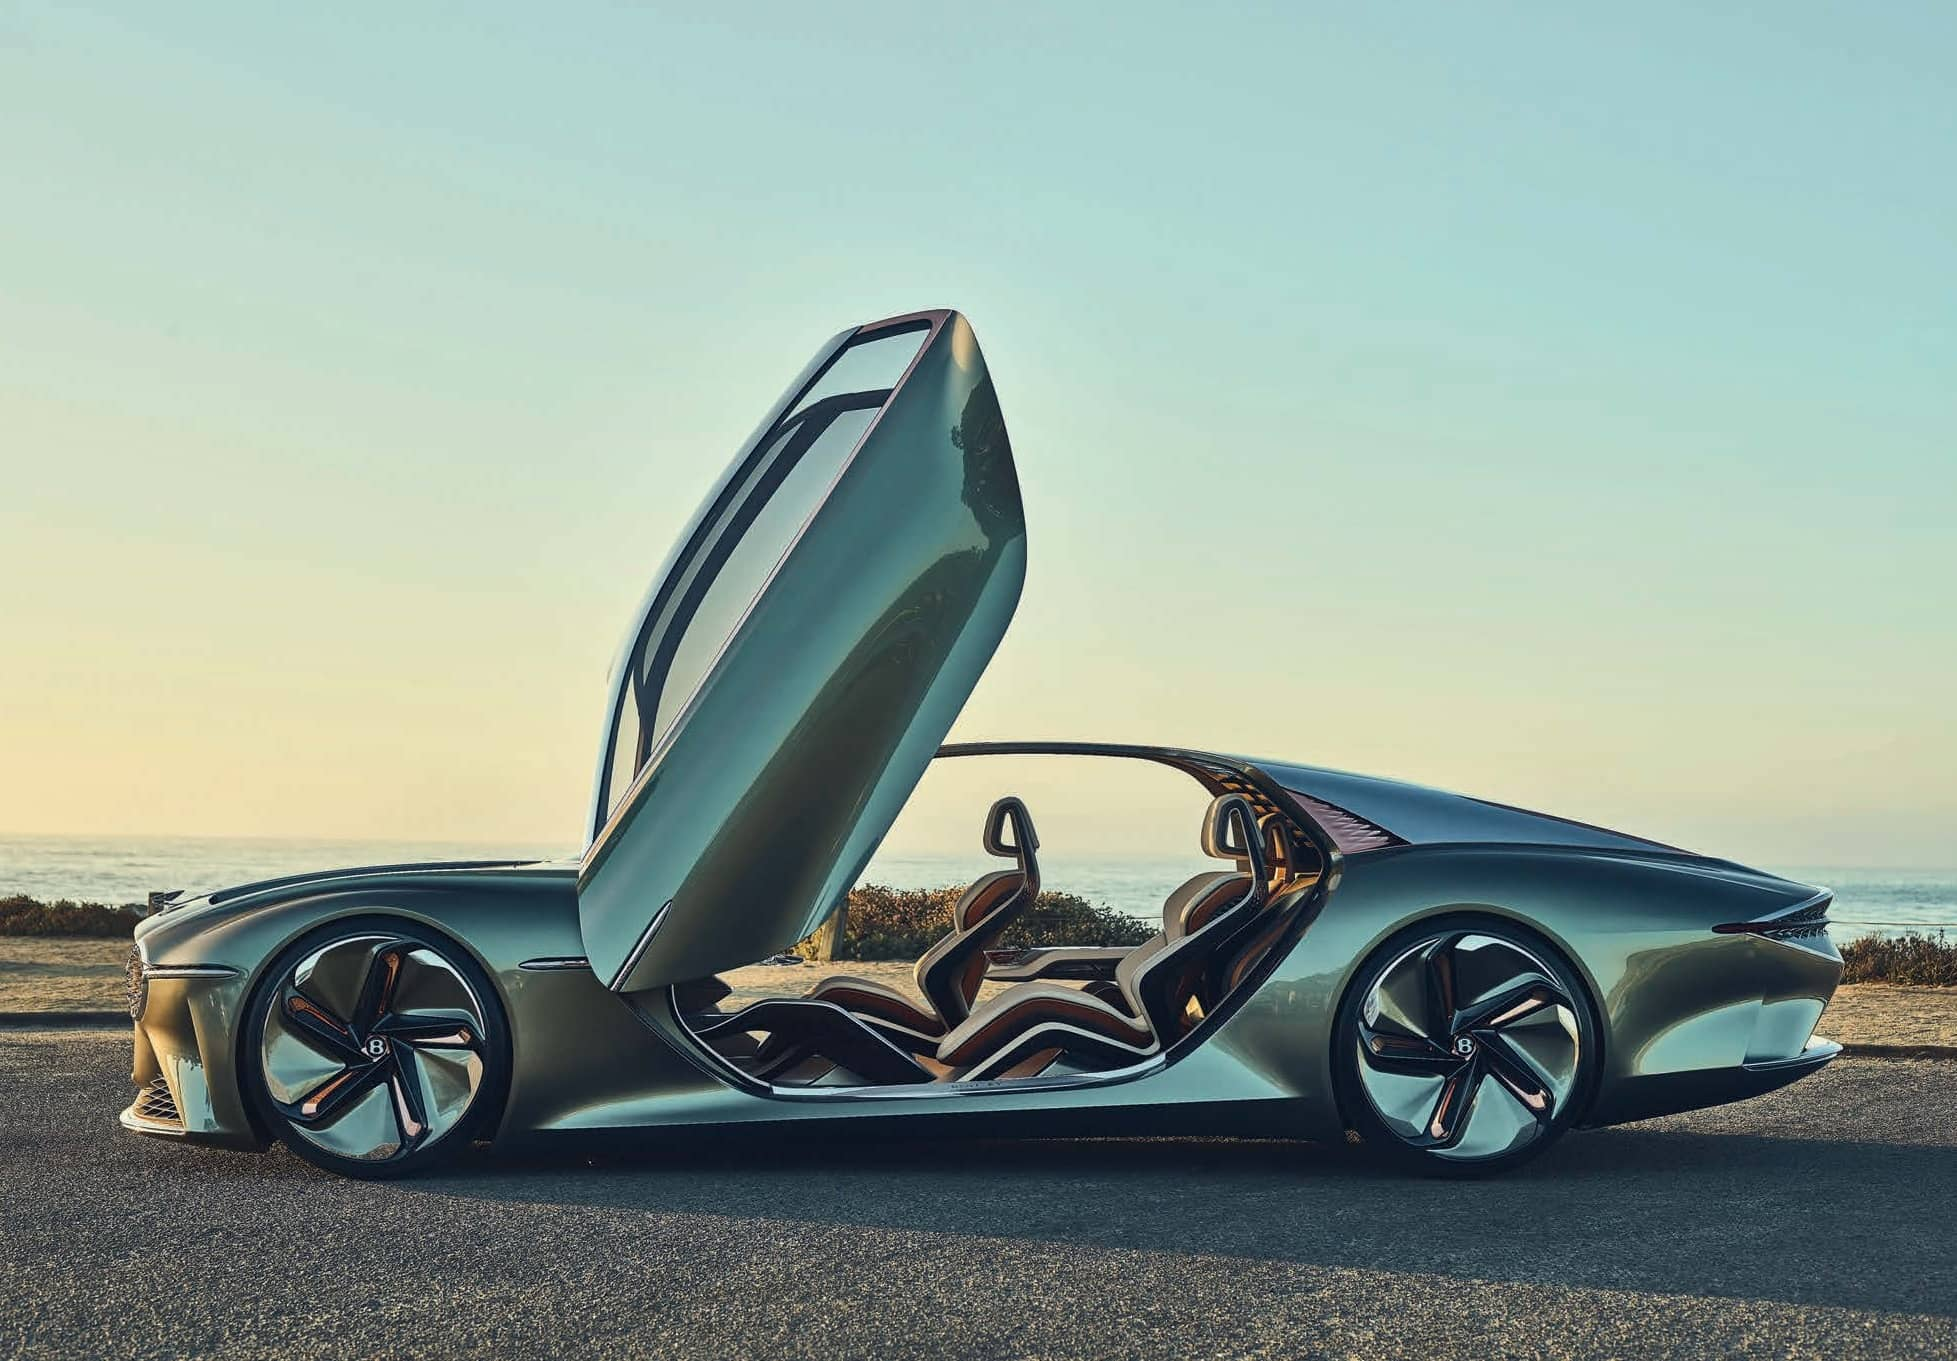 The Bentley EXP 100 GT Concept Car Offers A Glimpse Into Its Dramatic New Design Language